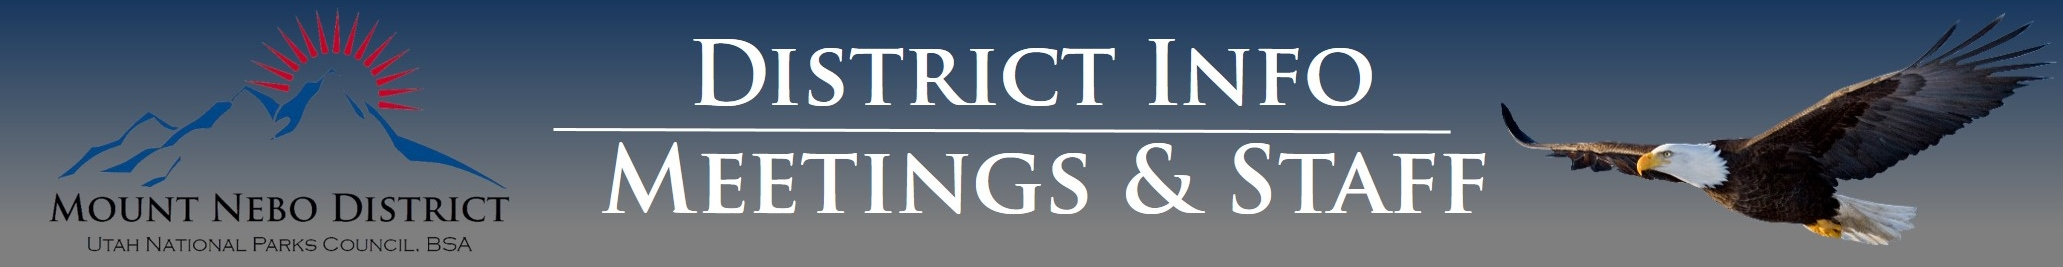 District Committee Resources District Webpage